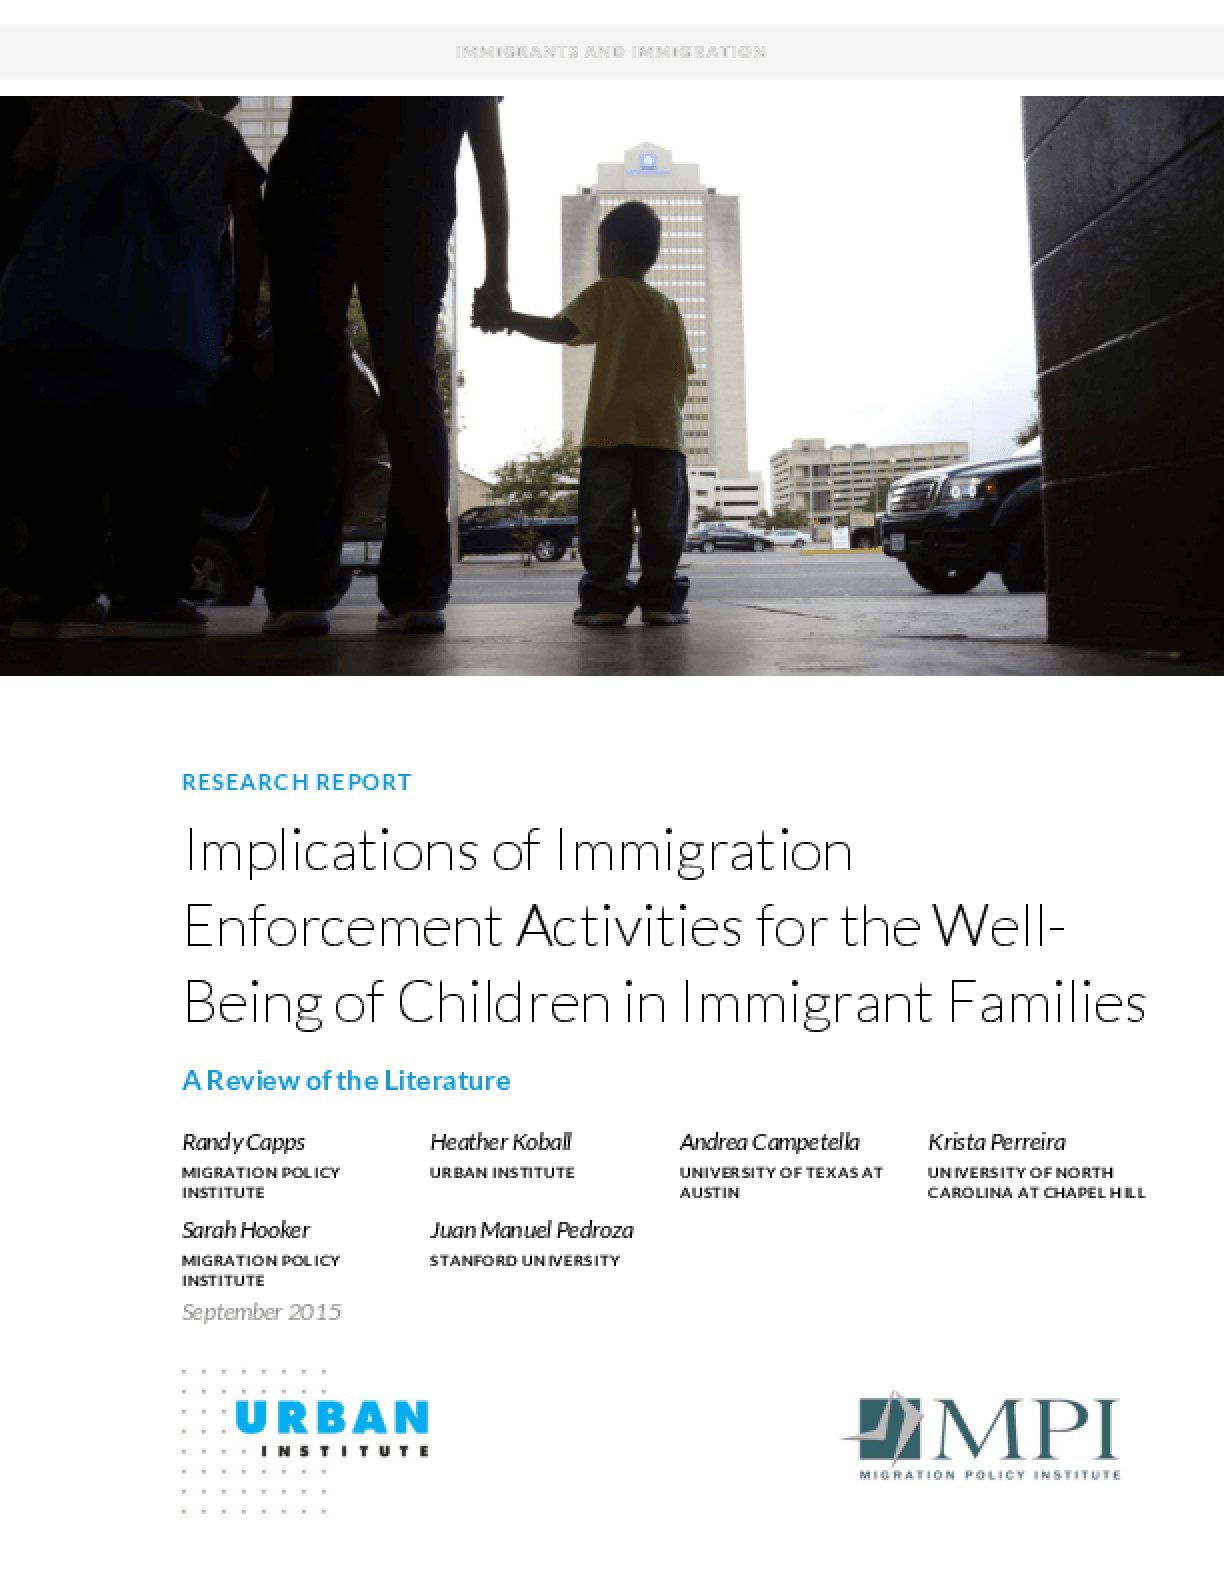 Implications of Immigration Enforcement Activities for the Well-Being of Children in Immigrant Families: A Review of the Literature